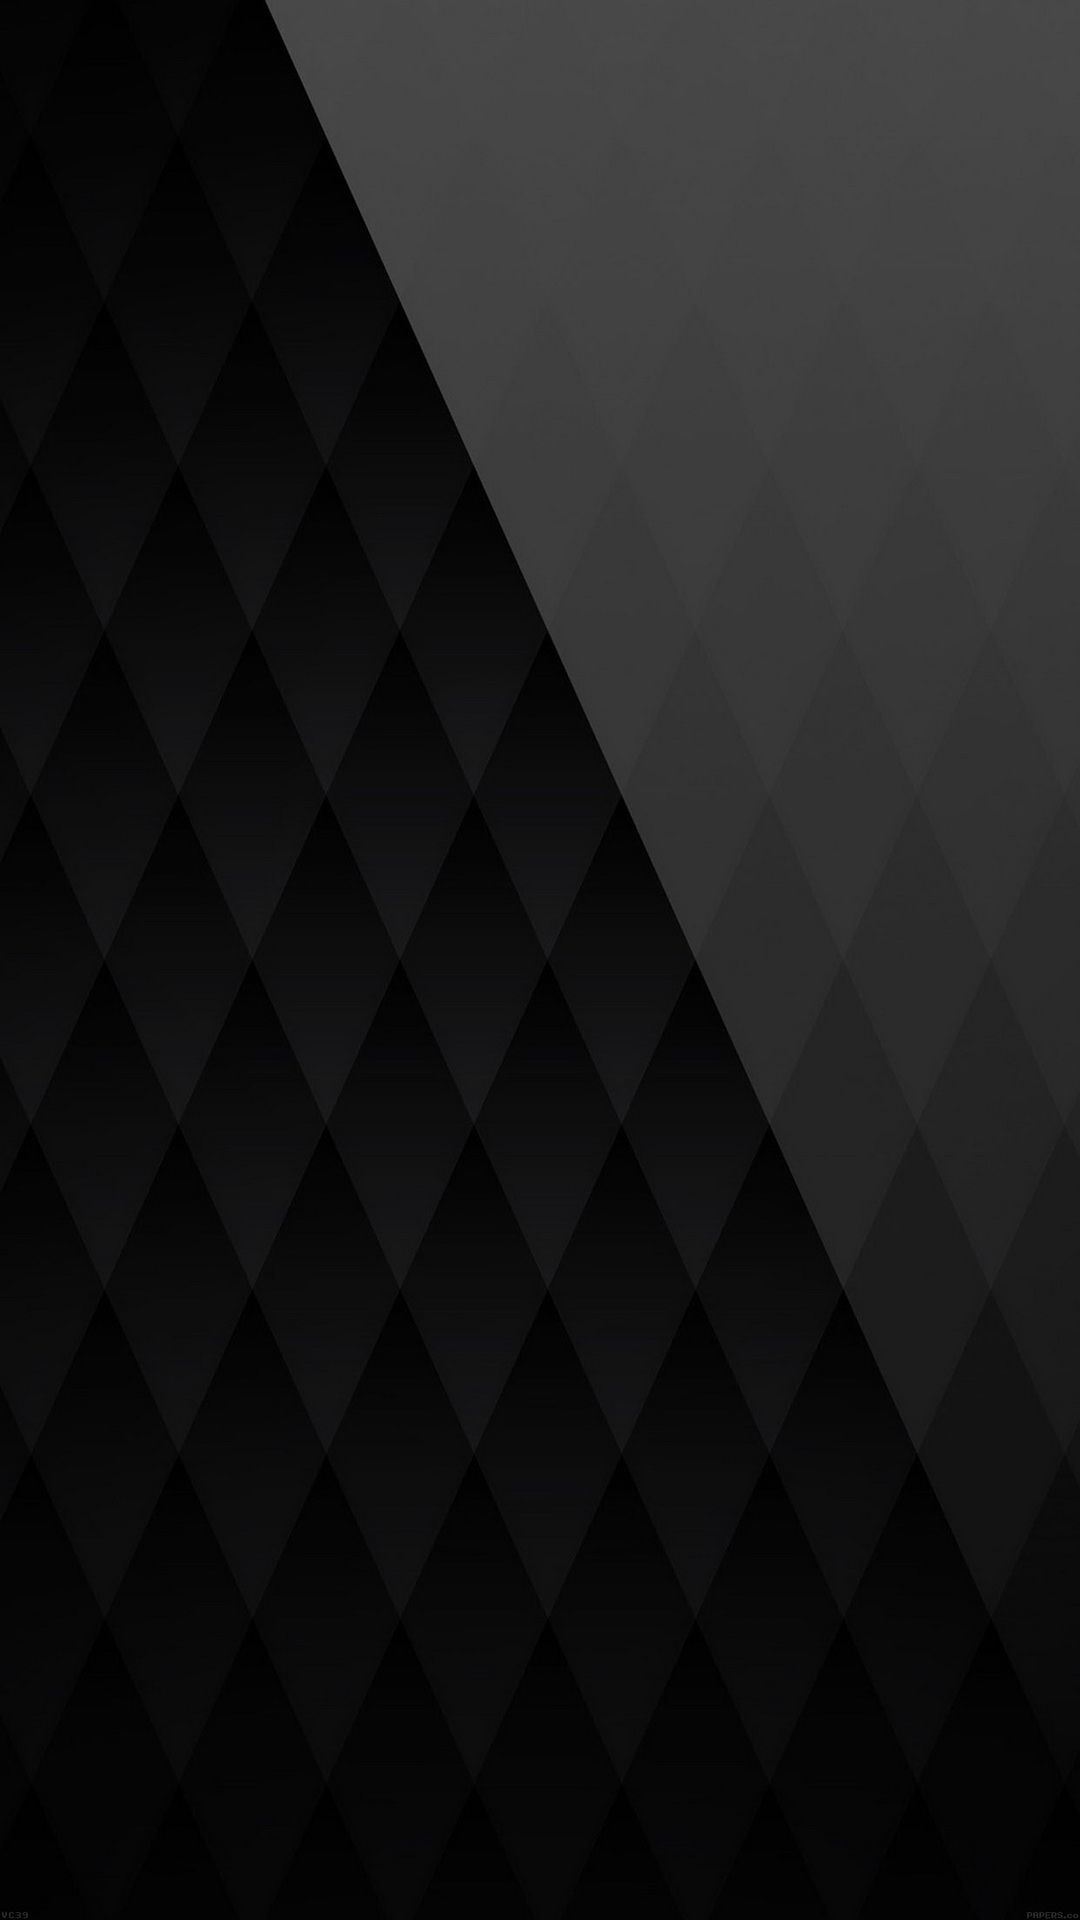 Diamond pattern wallpapers hd hd wallpapers pinterest android smartphone wallpapers best android wallpapers free wallpapers for your android voltagebd Choice Image